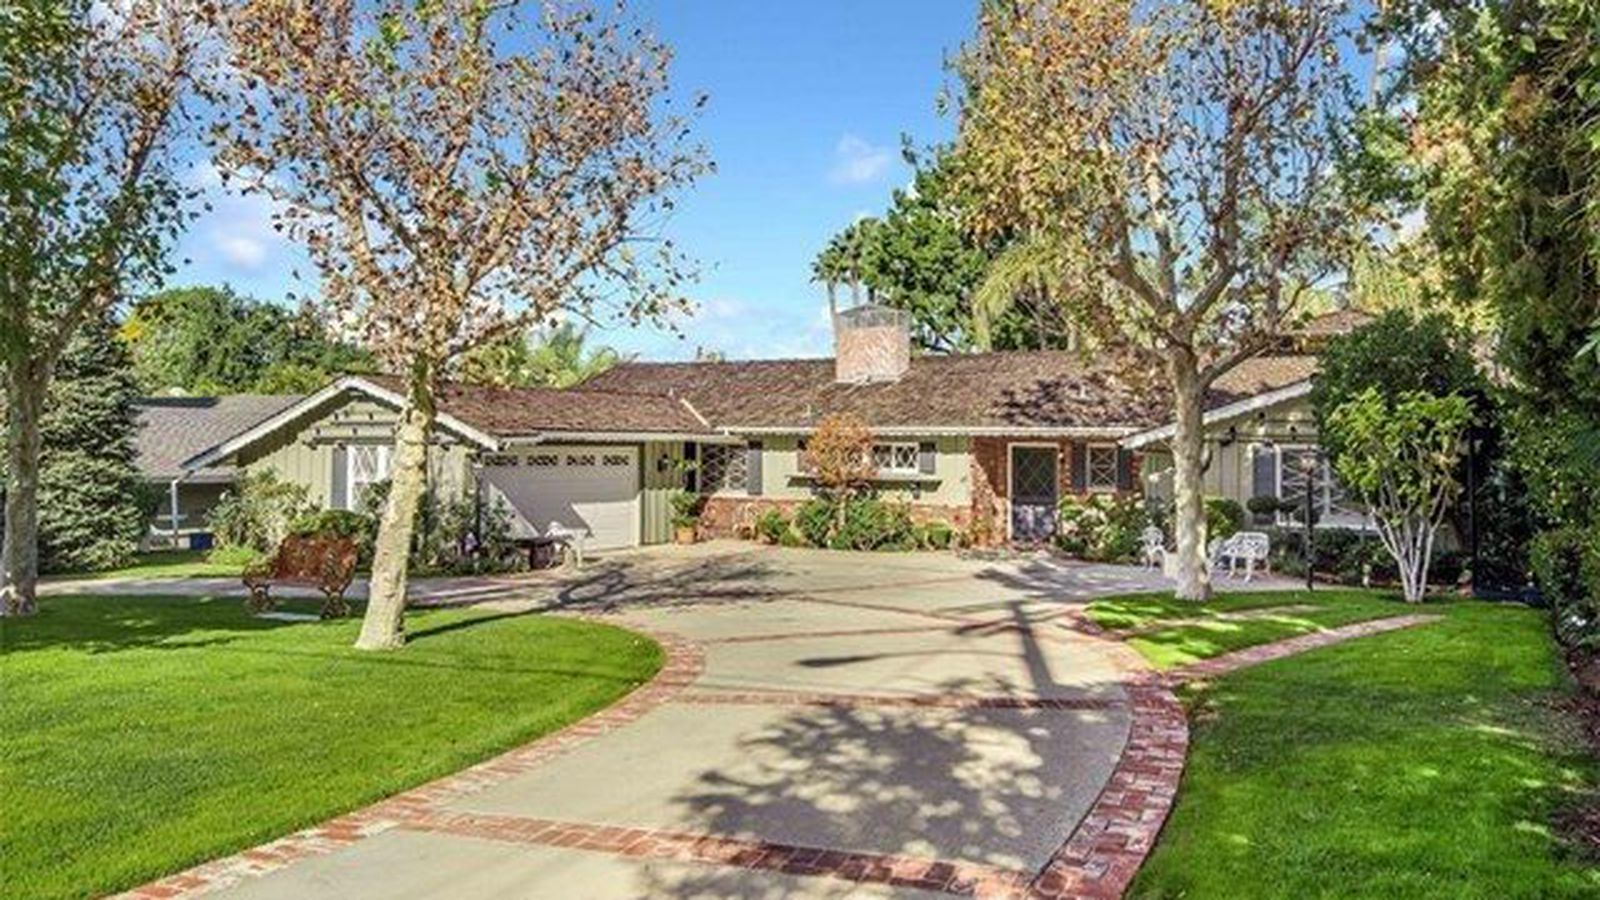 1950s Traditional Ranch In Woodland Hills Asking 999 000